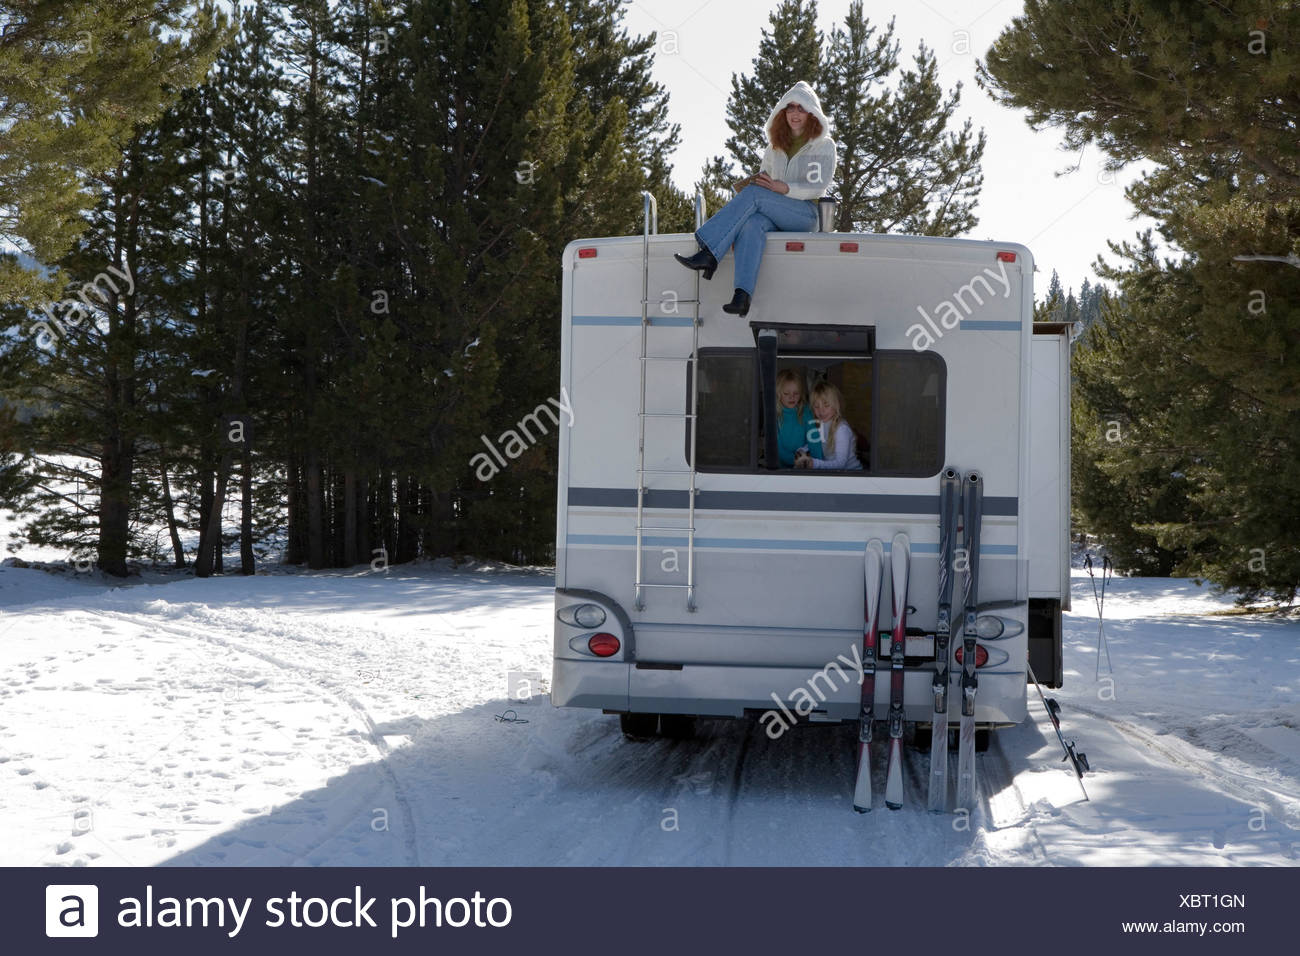 Mature Woman Sitting On Top Of A Recreational Vehicle With Her Two Daughters Inside It